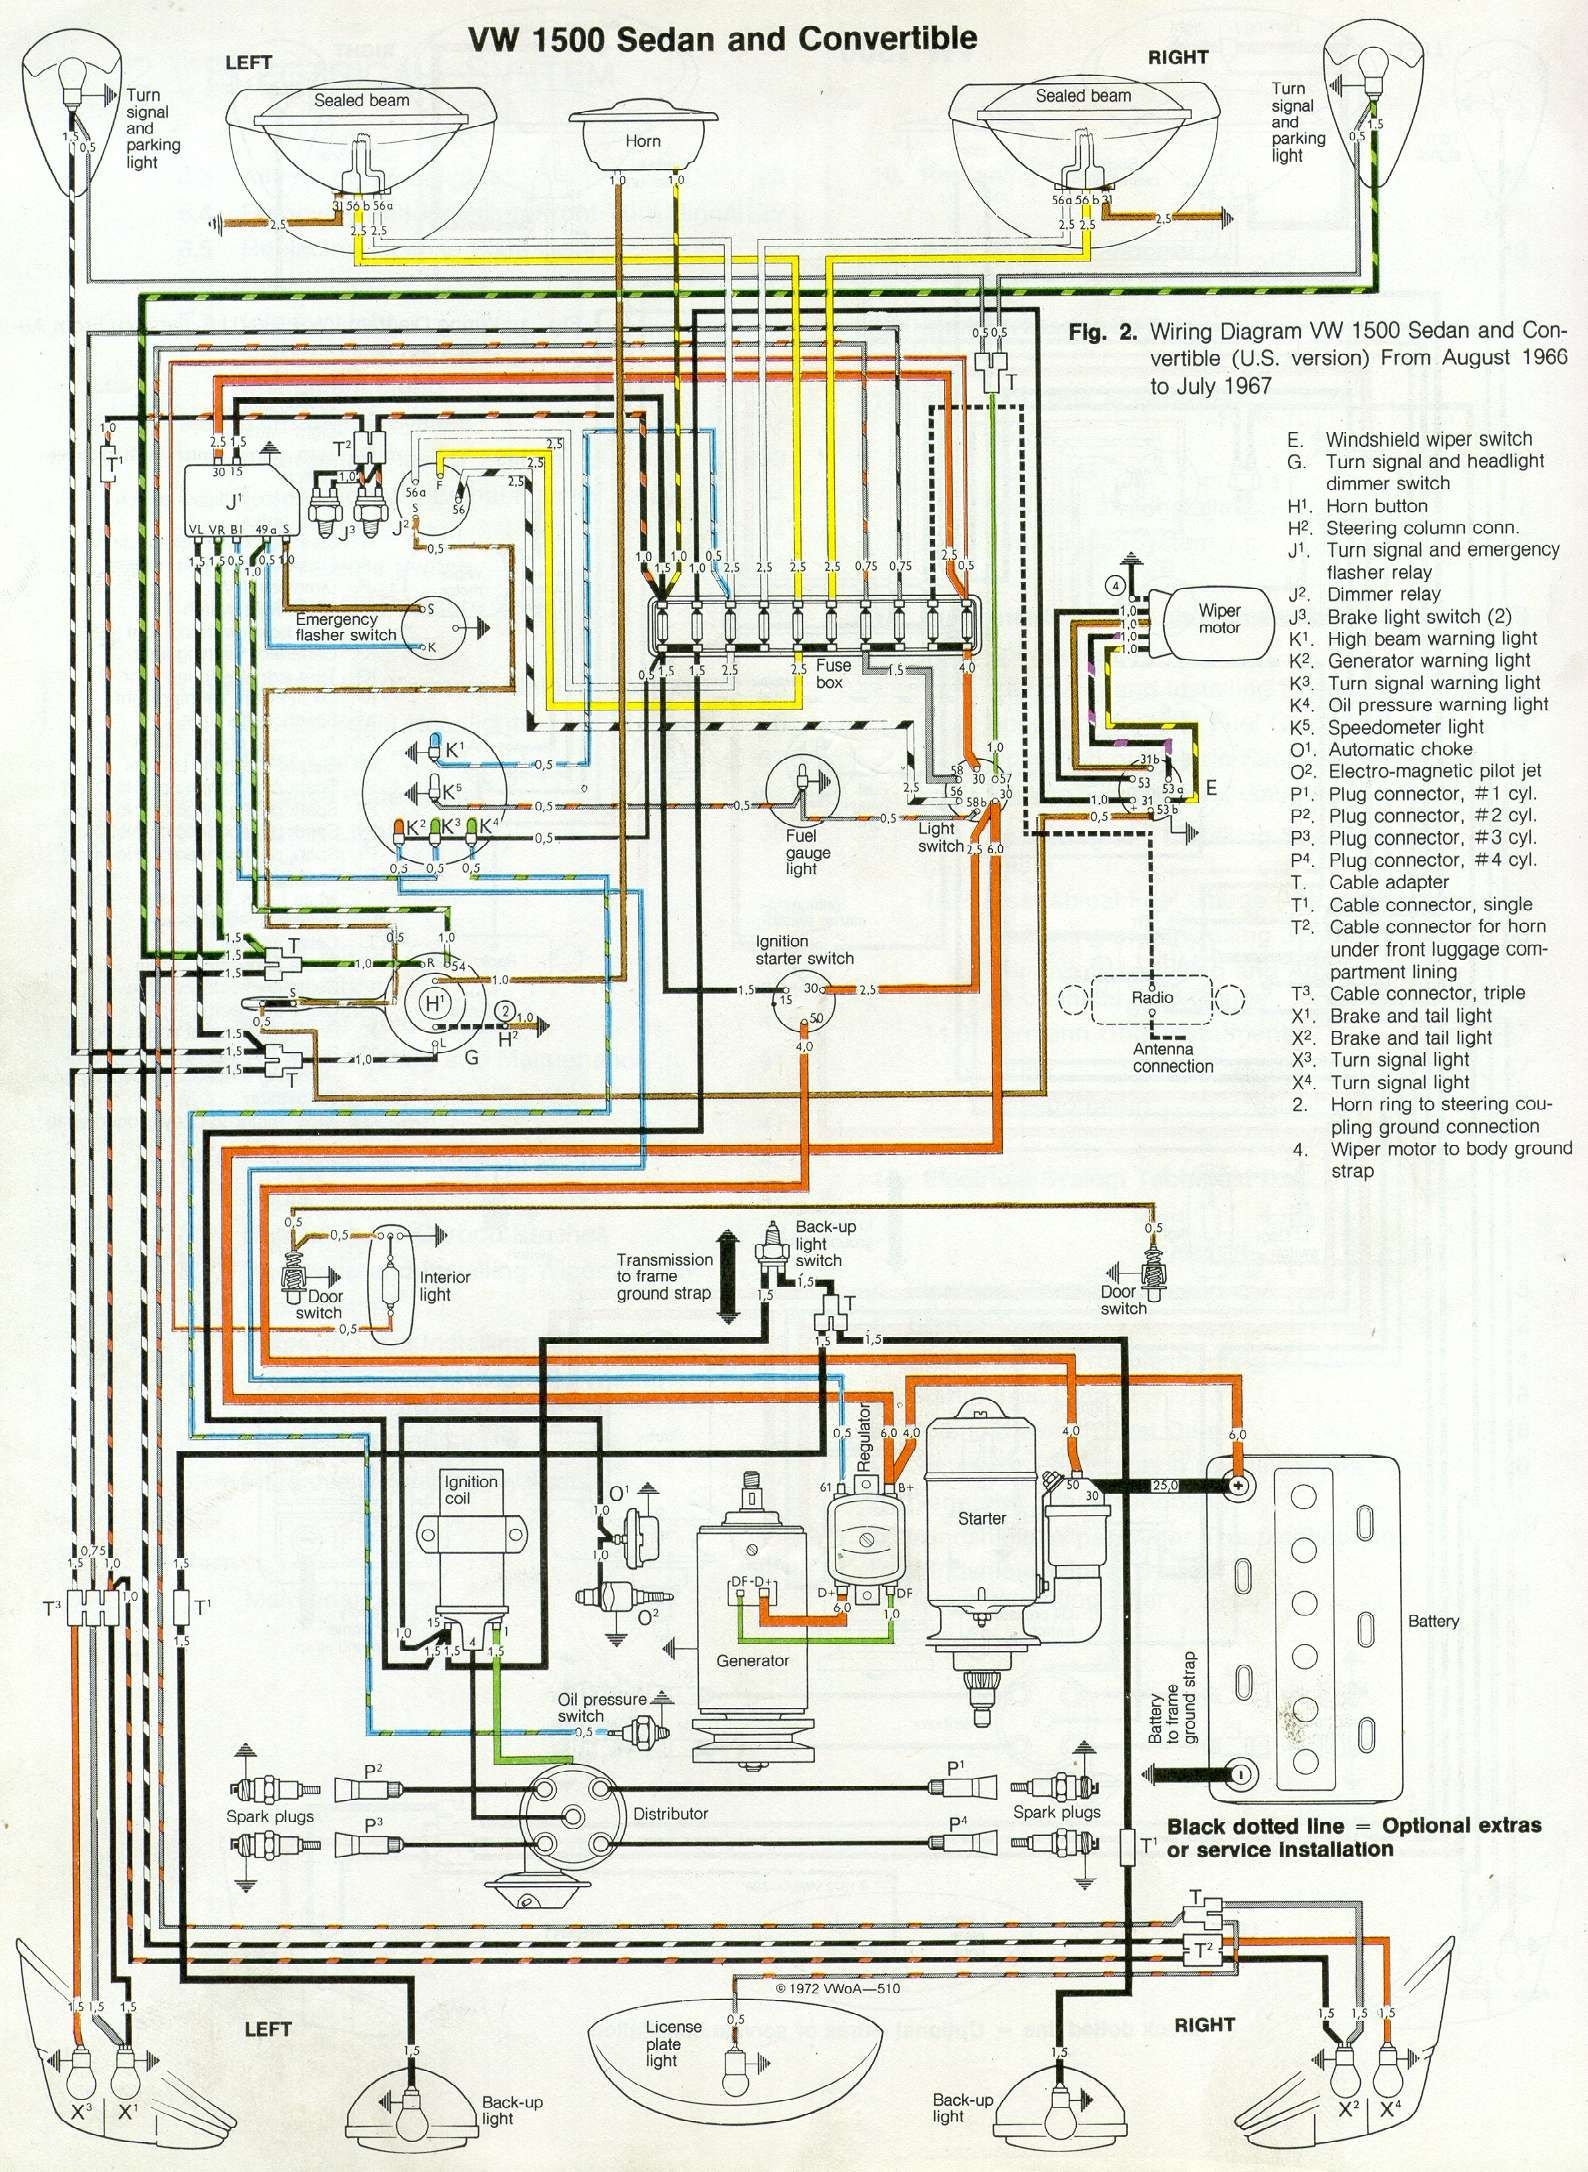 medium resolution of 1966 volkswagen wiring diagram residential electrical symbols u2022 12 fuse box volkswagen bus 1966 vw